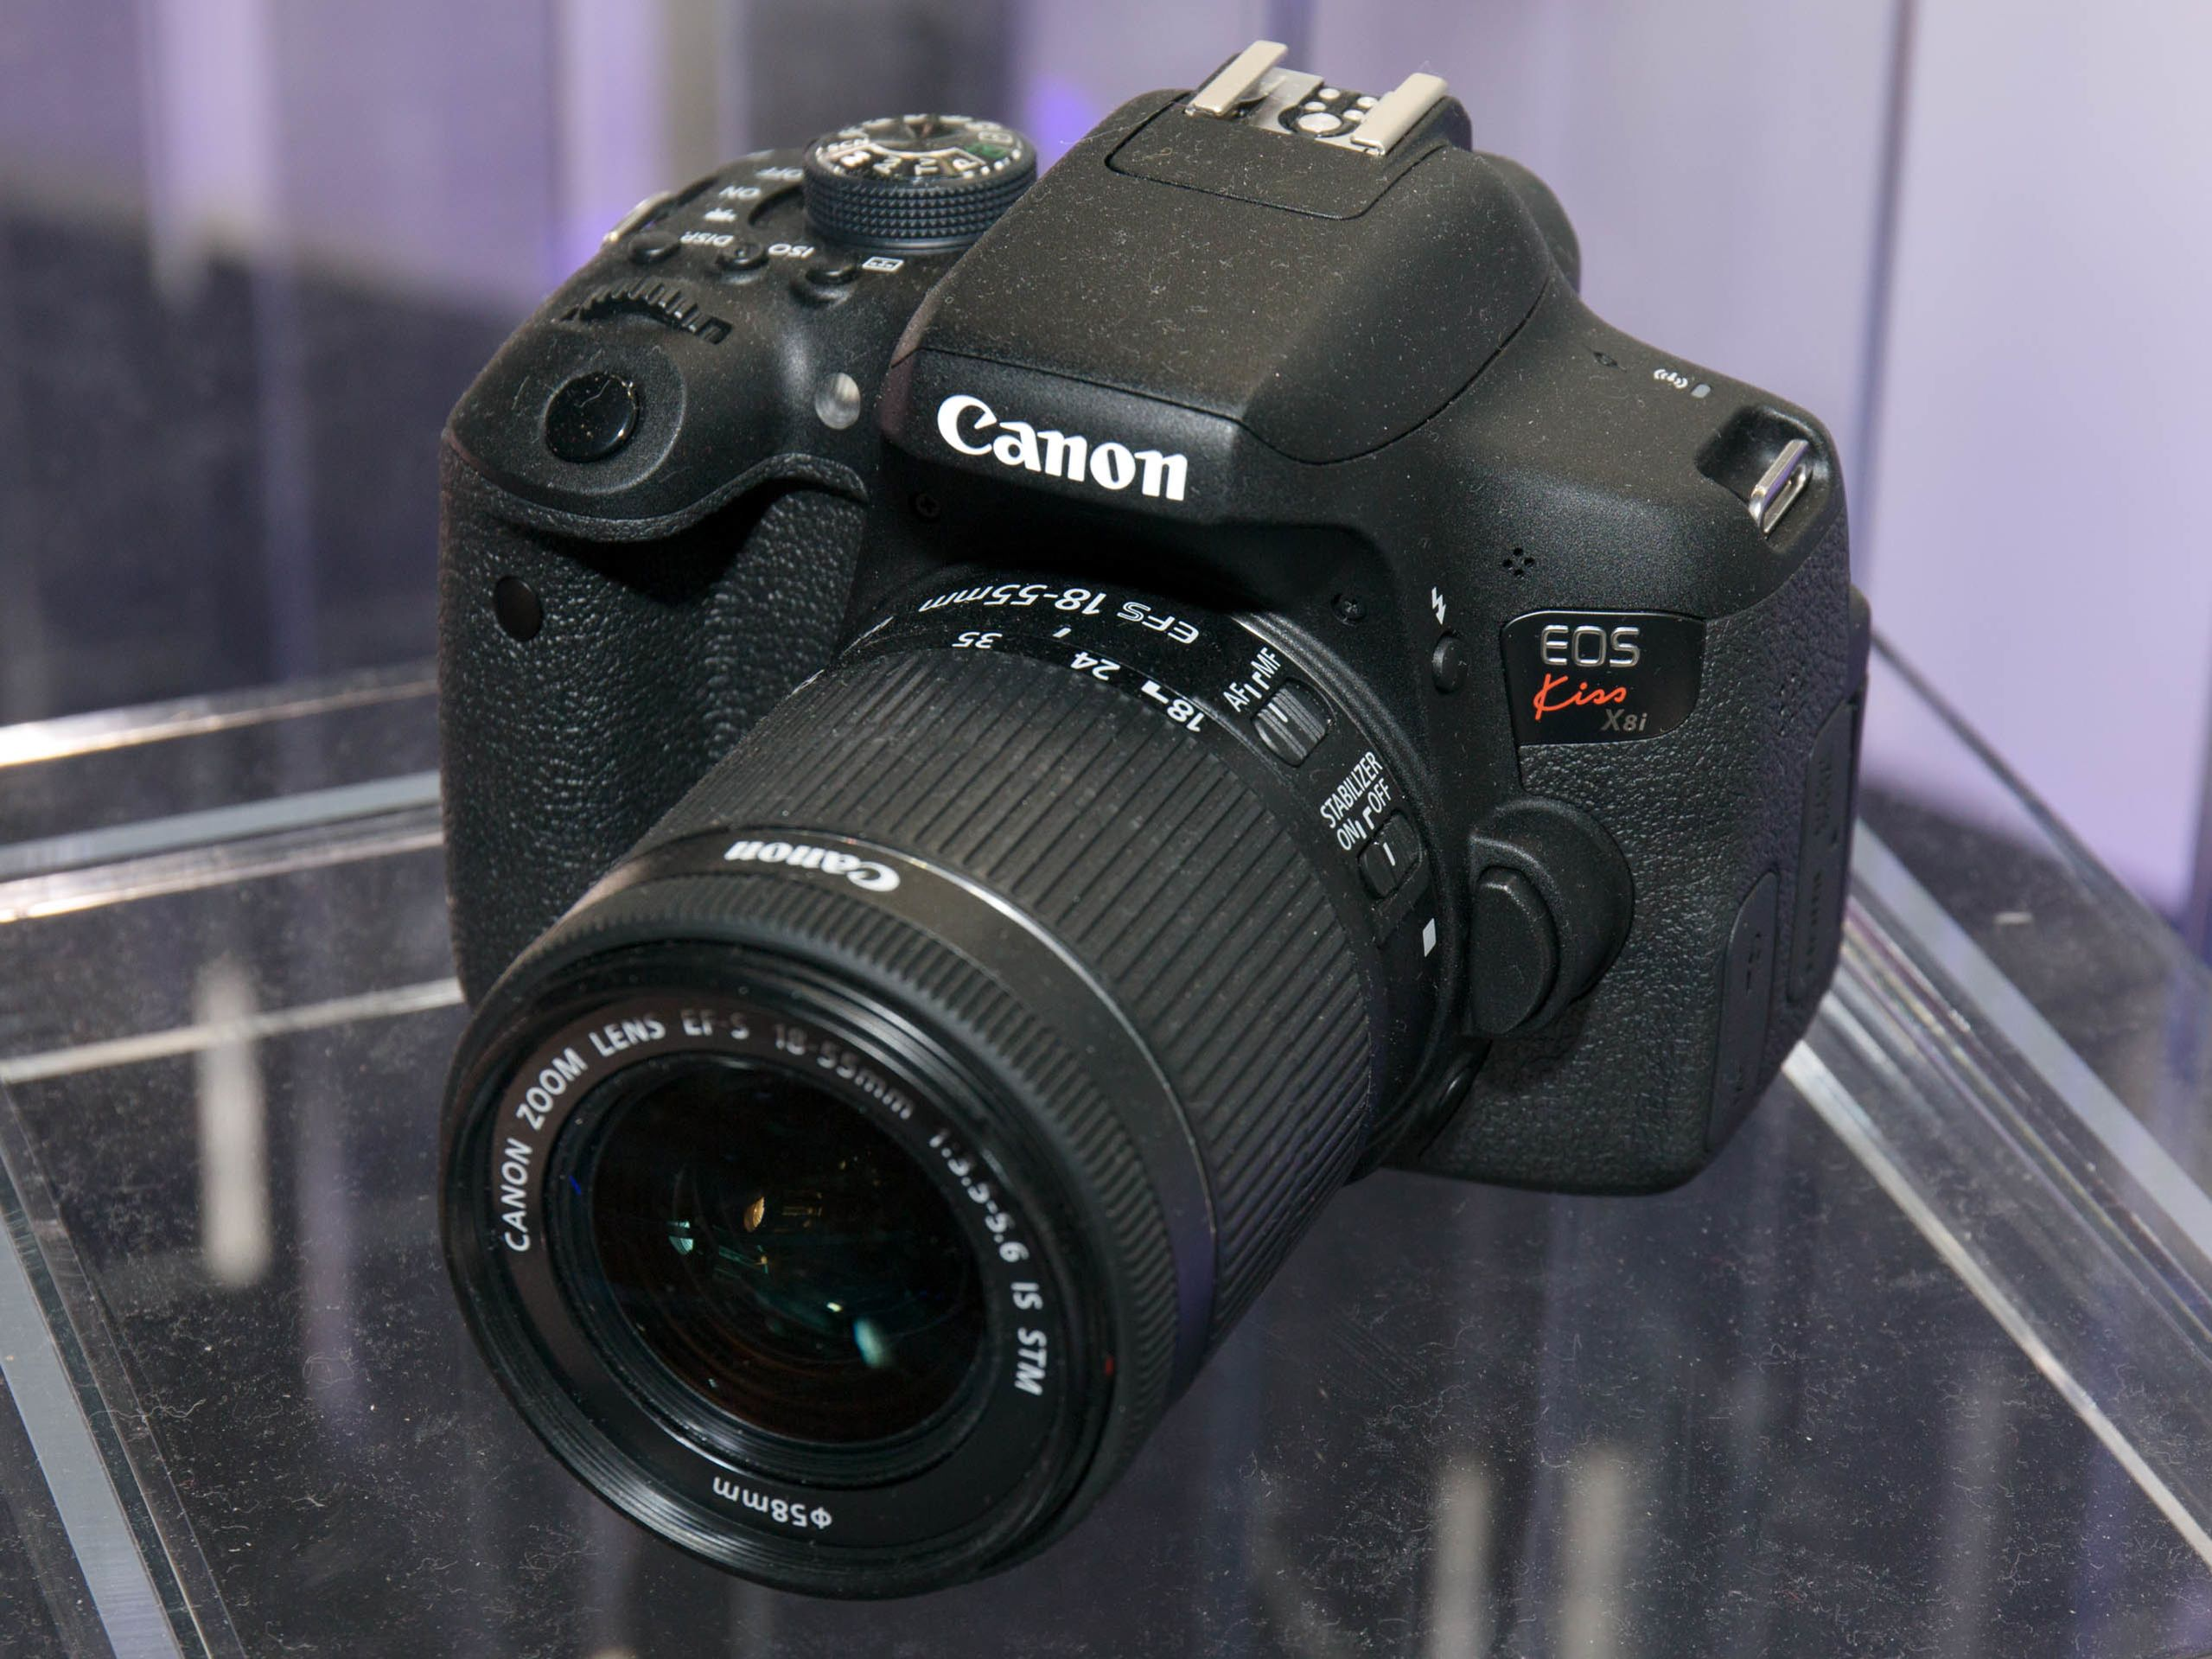 Canon EOS 760D - The complete information and online sale with free